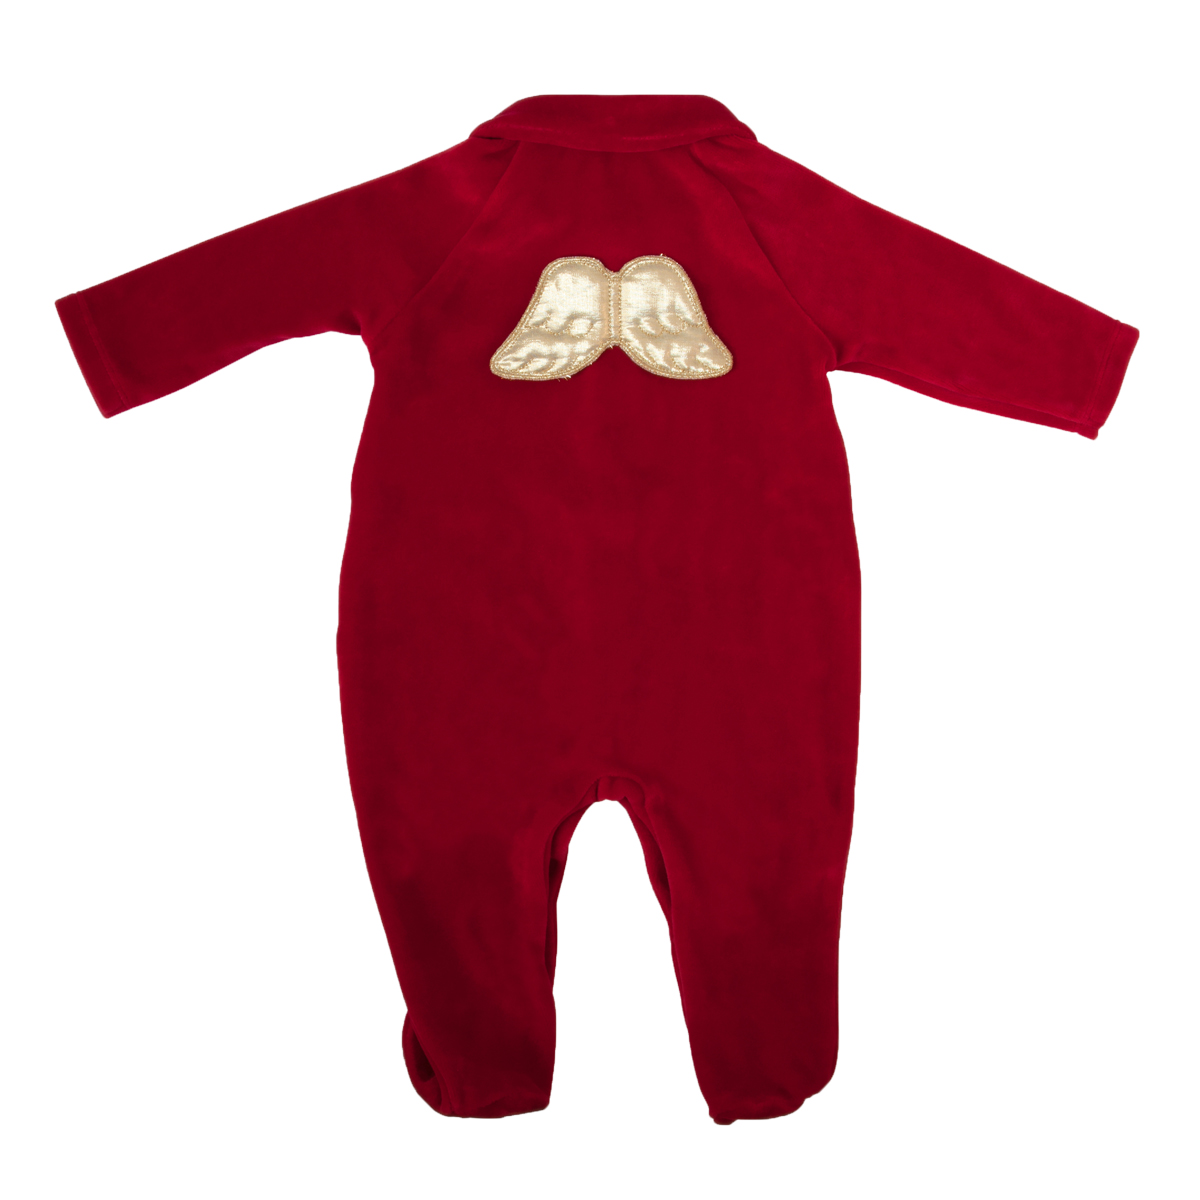 Marie Chantal Velour Footie with Gold Wings in Red